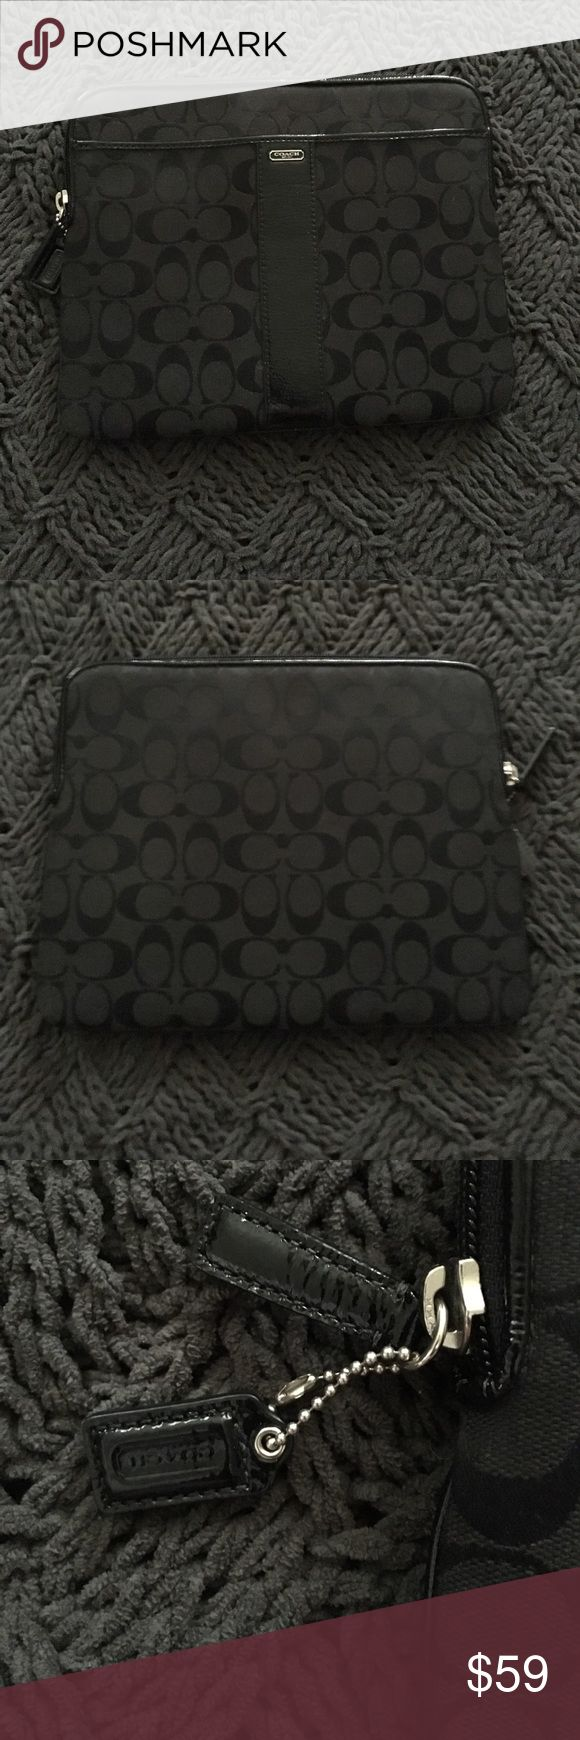 Coach tablet case! Black Coach tablet case with pink inside. Coach Accessories Tablet Cases